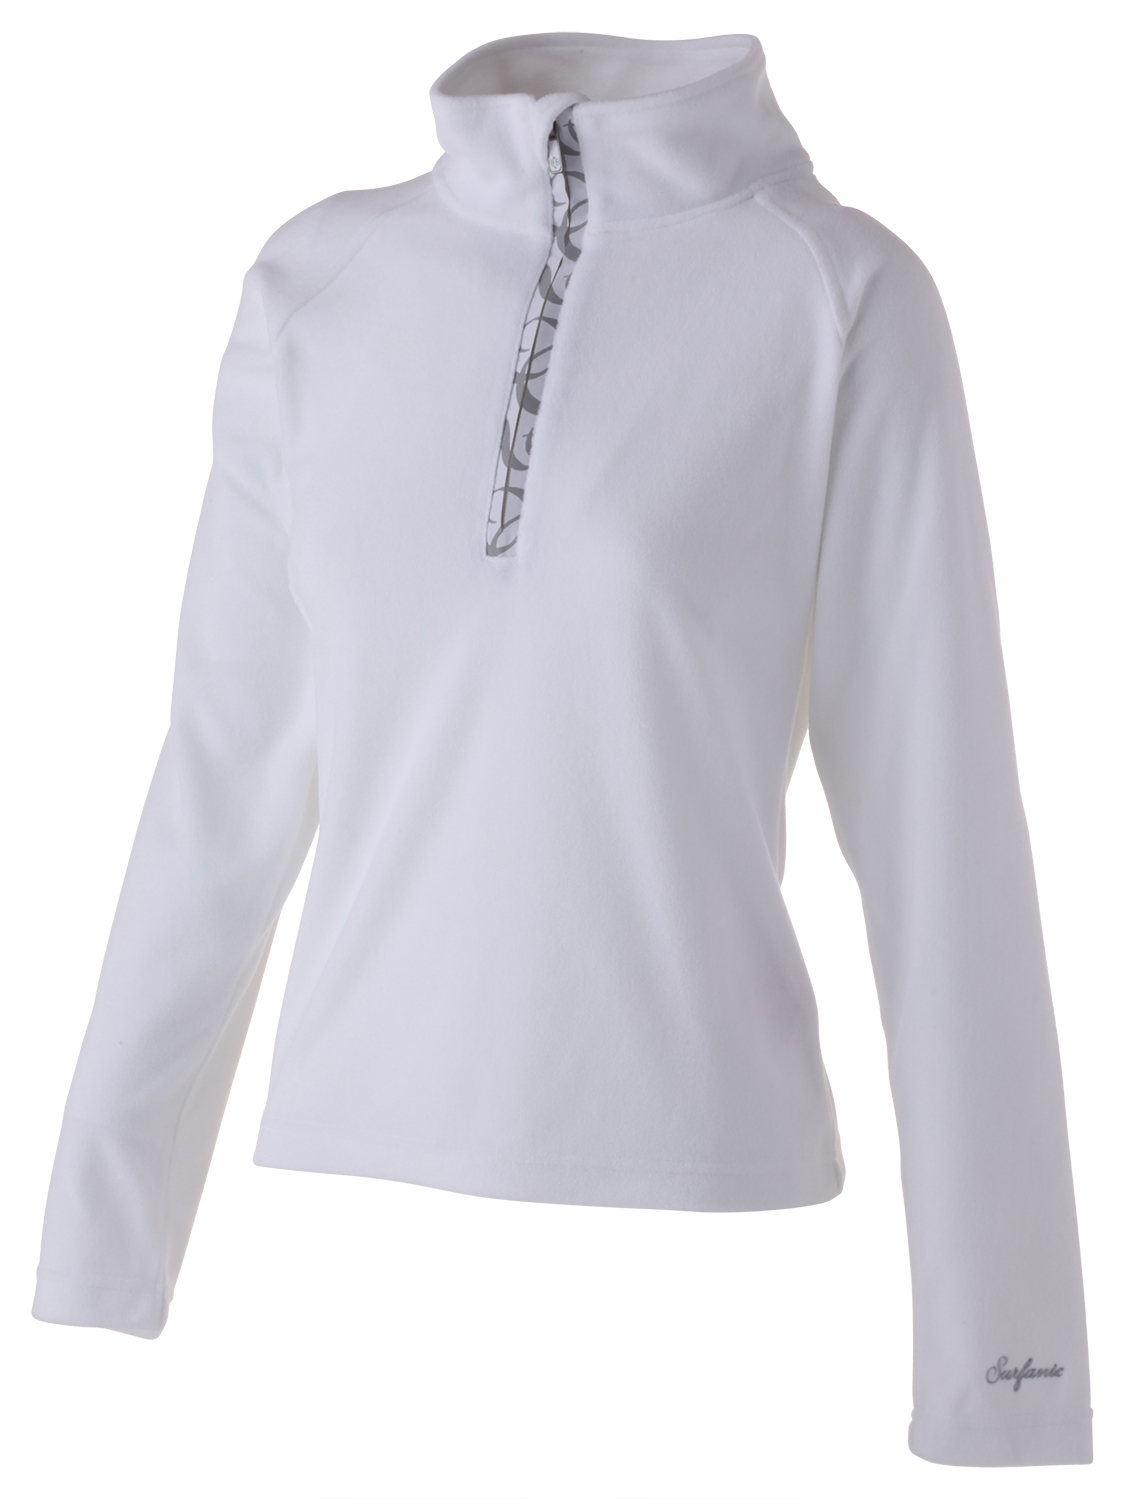 Women Ski Fleeces. Want to get Women Ski Fleeces?Welcome to the official site for online sales of ski, Freeride and snowboard gear by Eider, a specialist maker of technical apparel for the most demanding athletes and lovers of the mountains and outdoors.